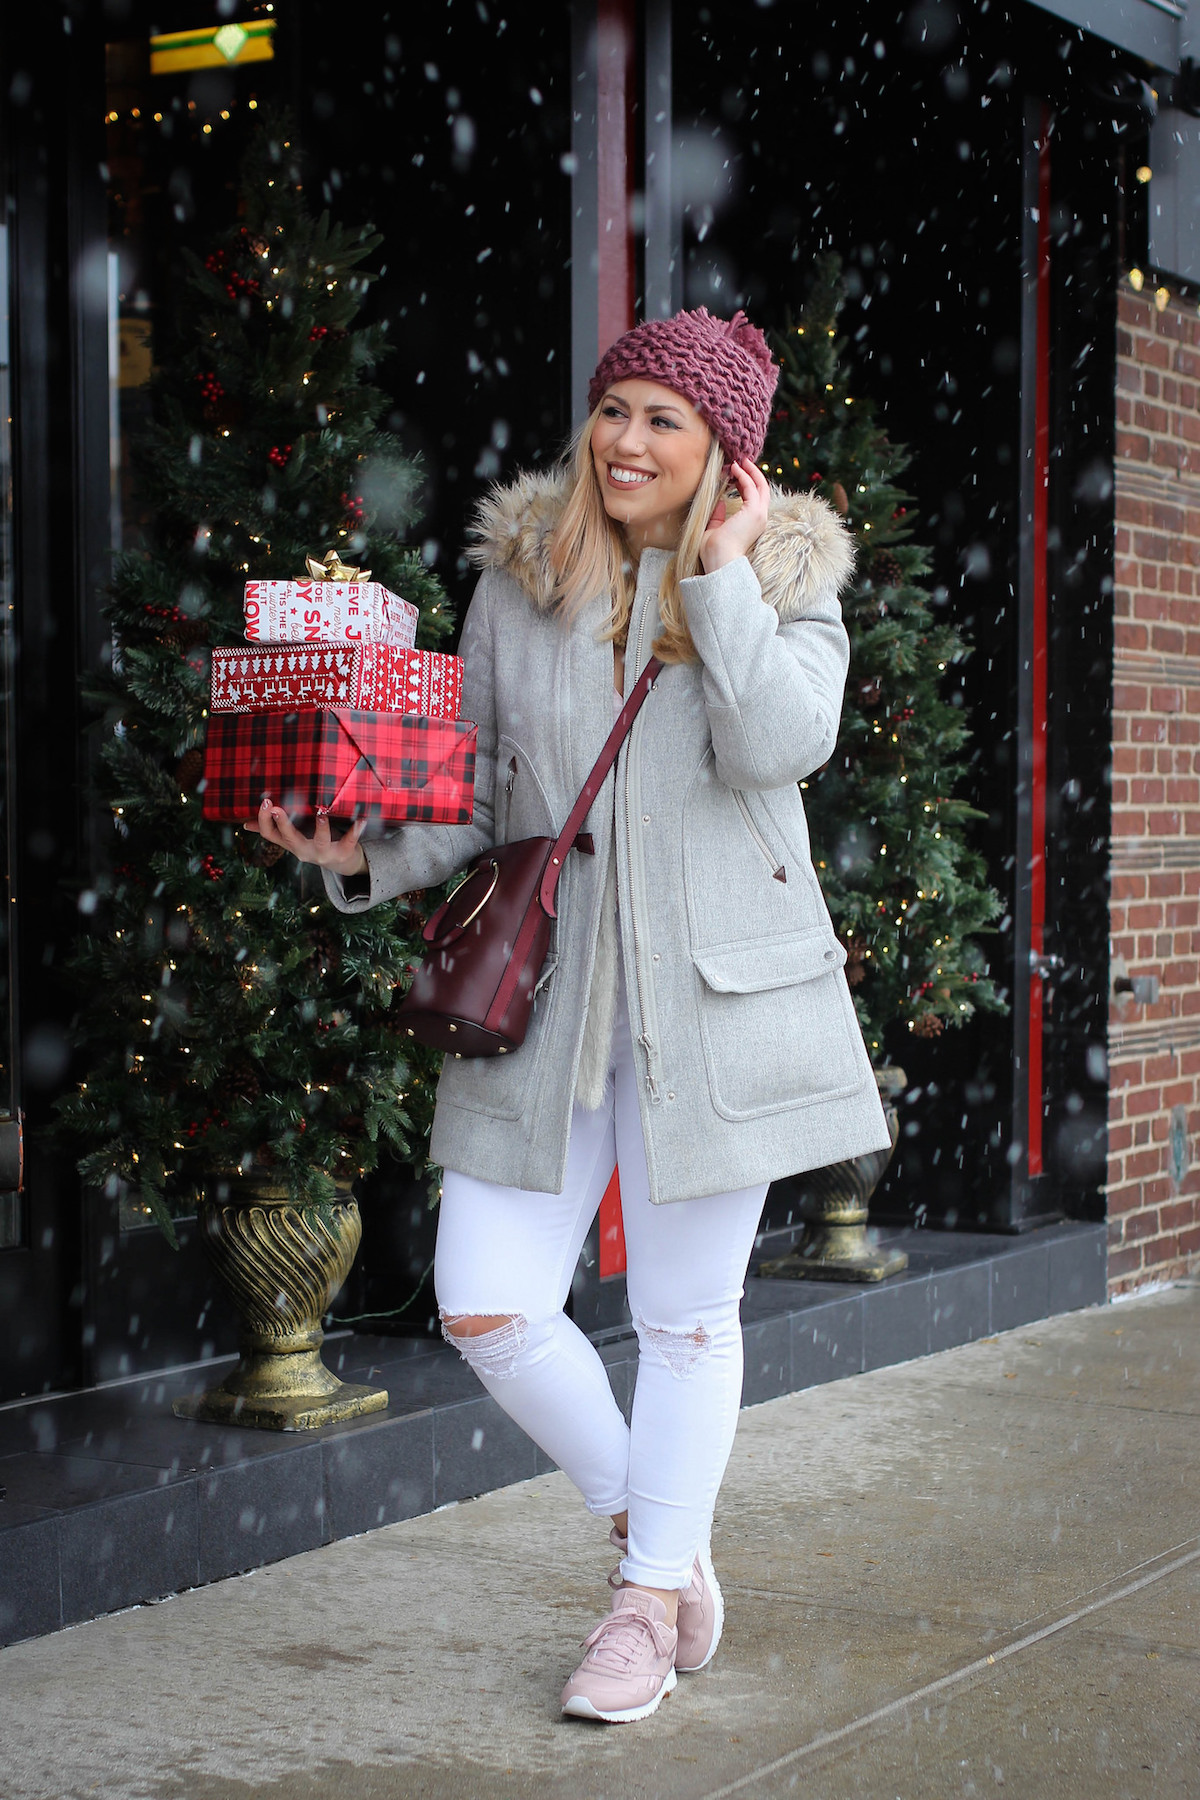 Bundled Up in a Holiday Athleisure Look with Reebok